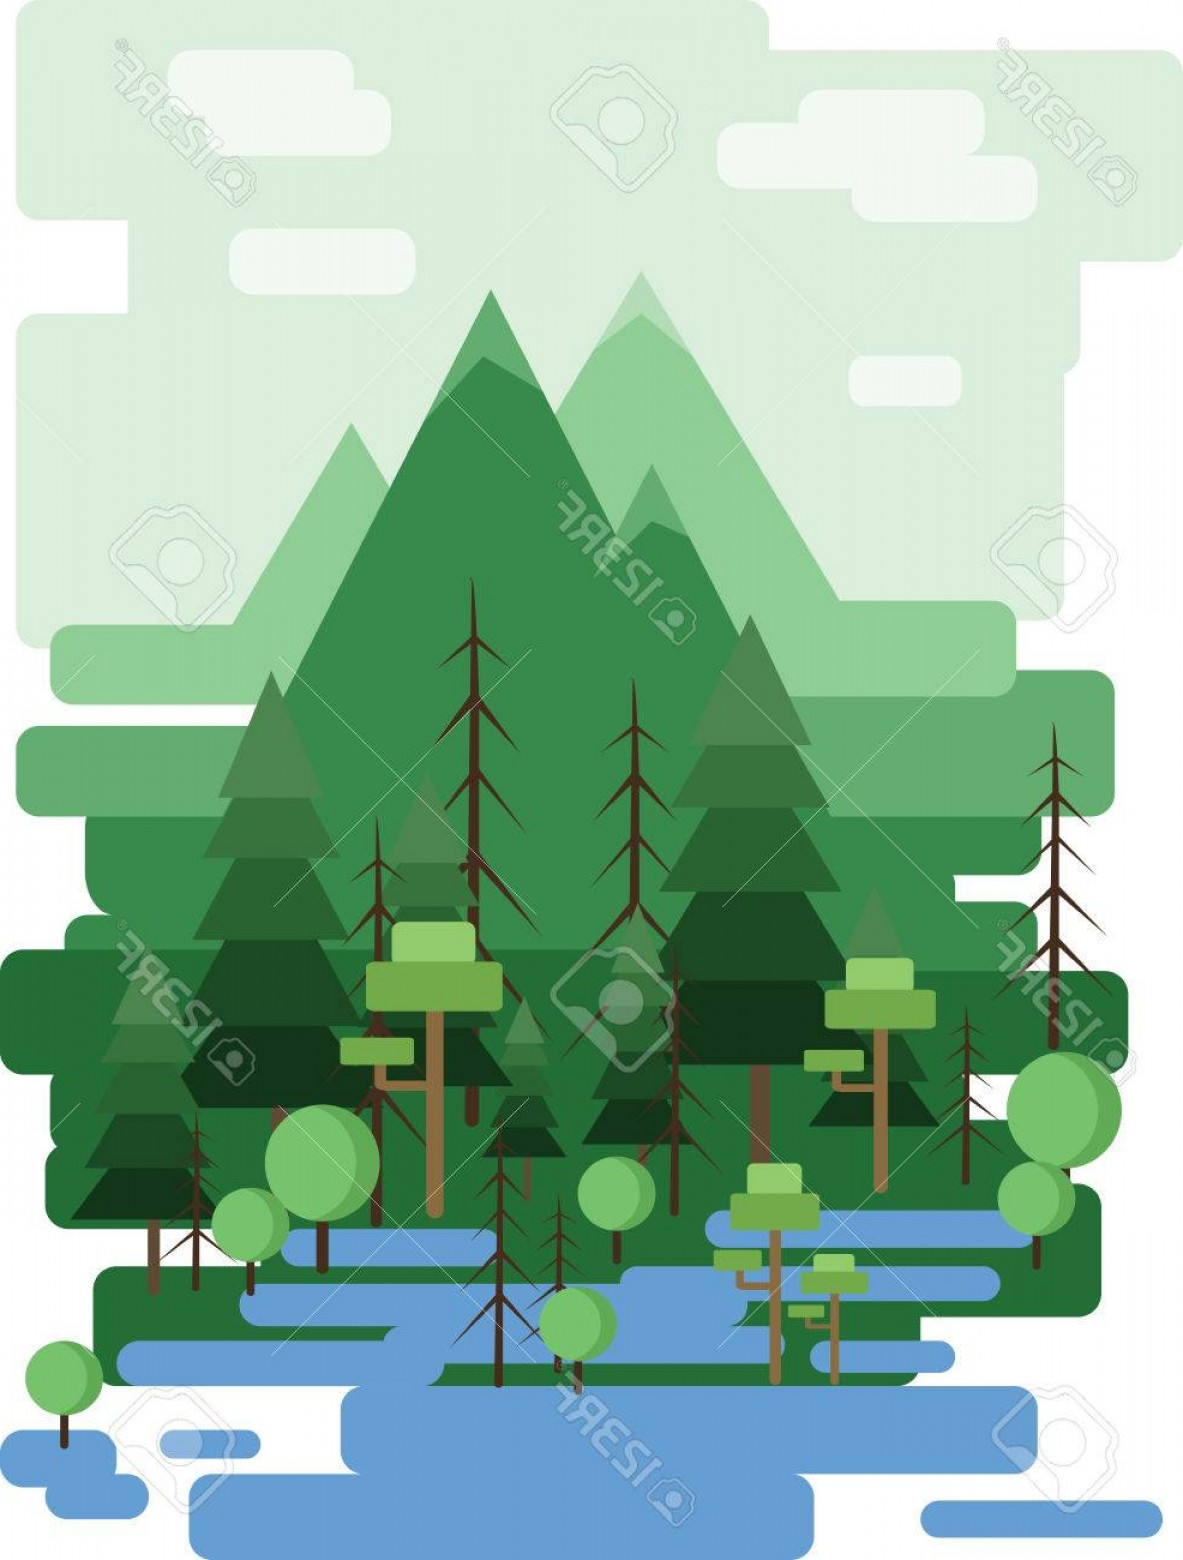 Flat Vector Art And Abstract Forest: Photostock Vector Abstract Landscape Design With Green Trees And Clouds A Forest And A Lake Flat Style Digital Vector